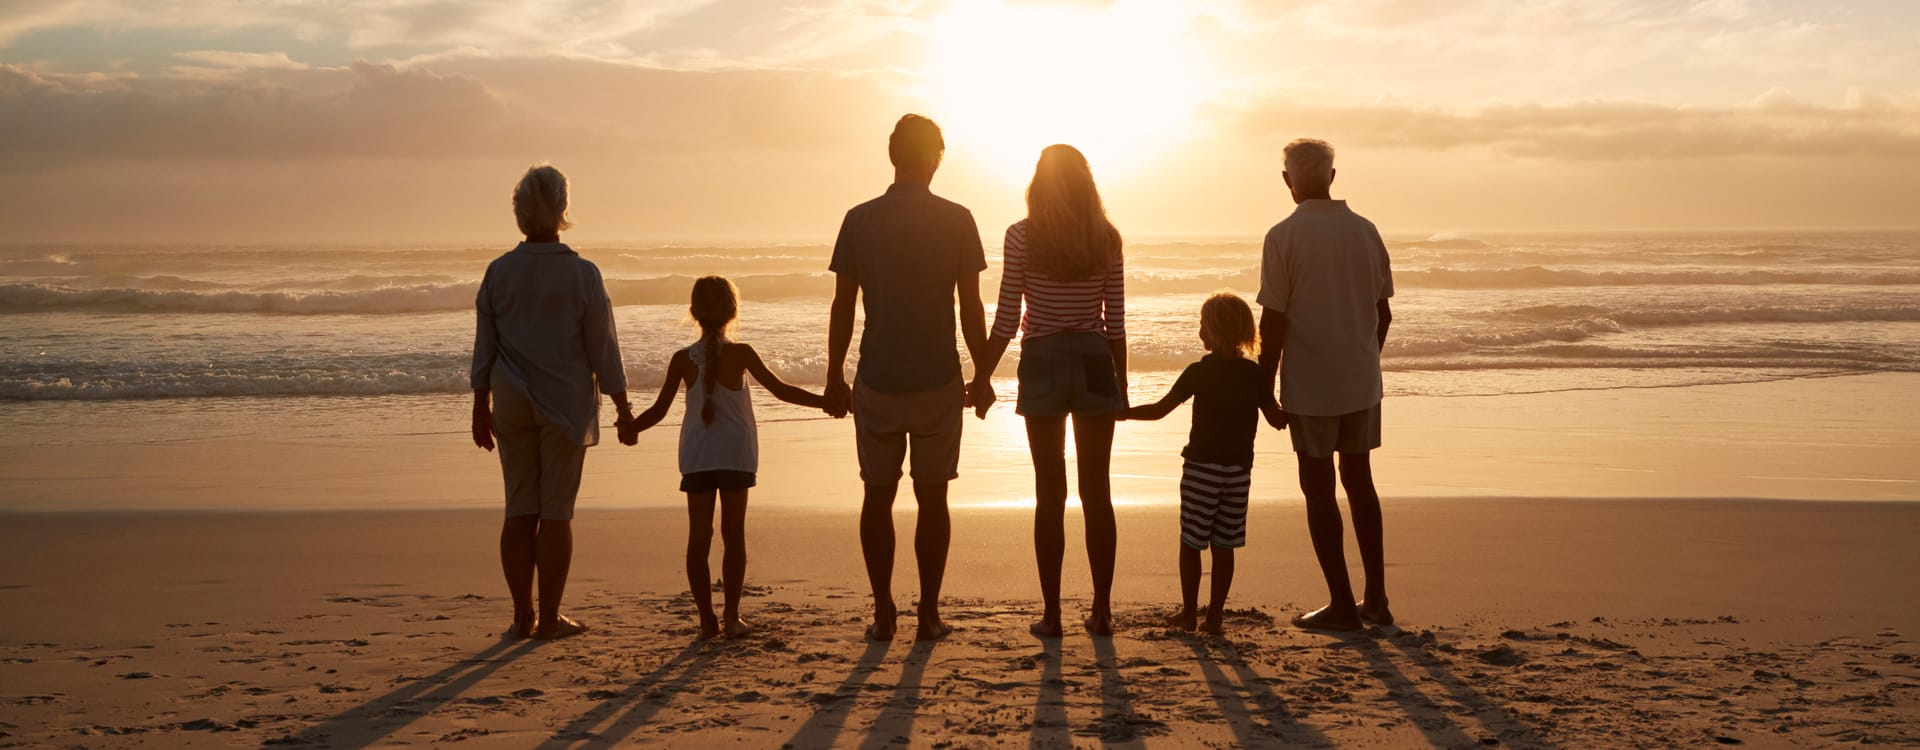 Family on the beach looking at the sunset